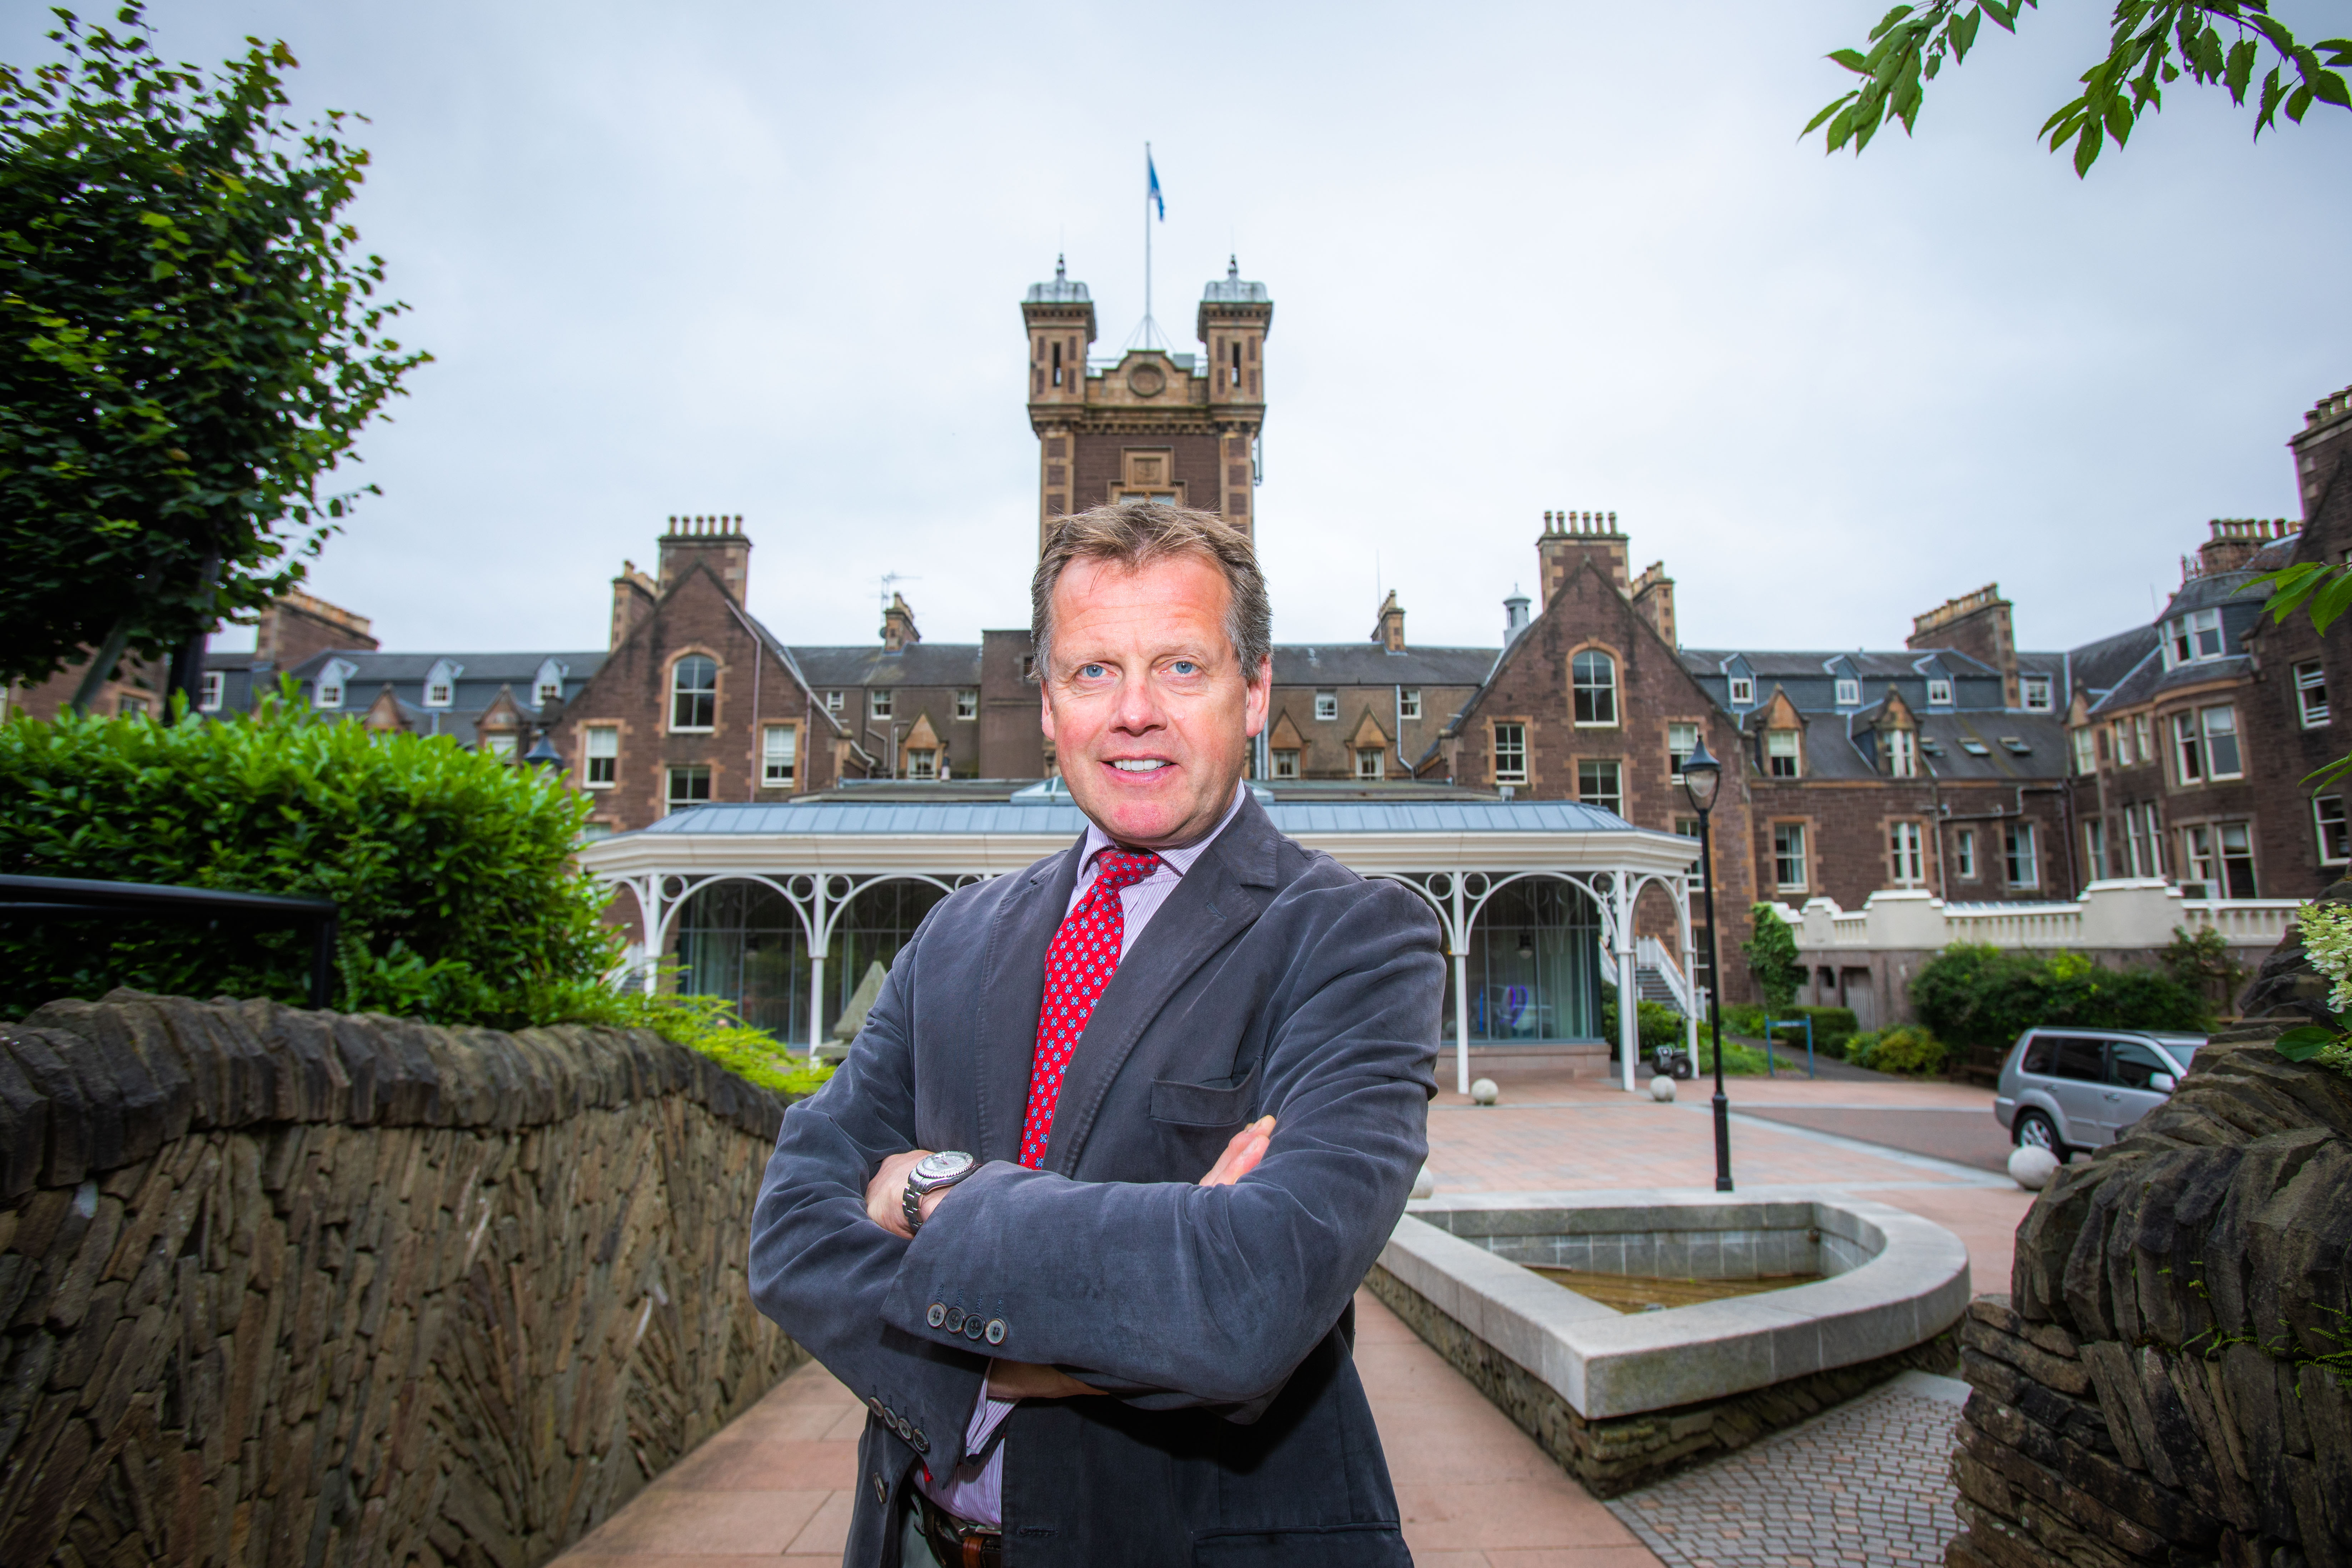 The new Lord Lieutenant for Perth and Kinross, Stephen Leckie